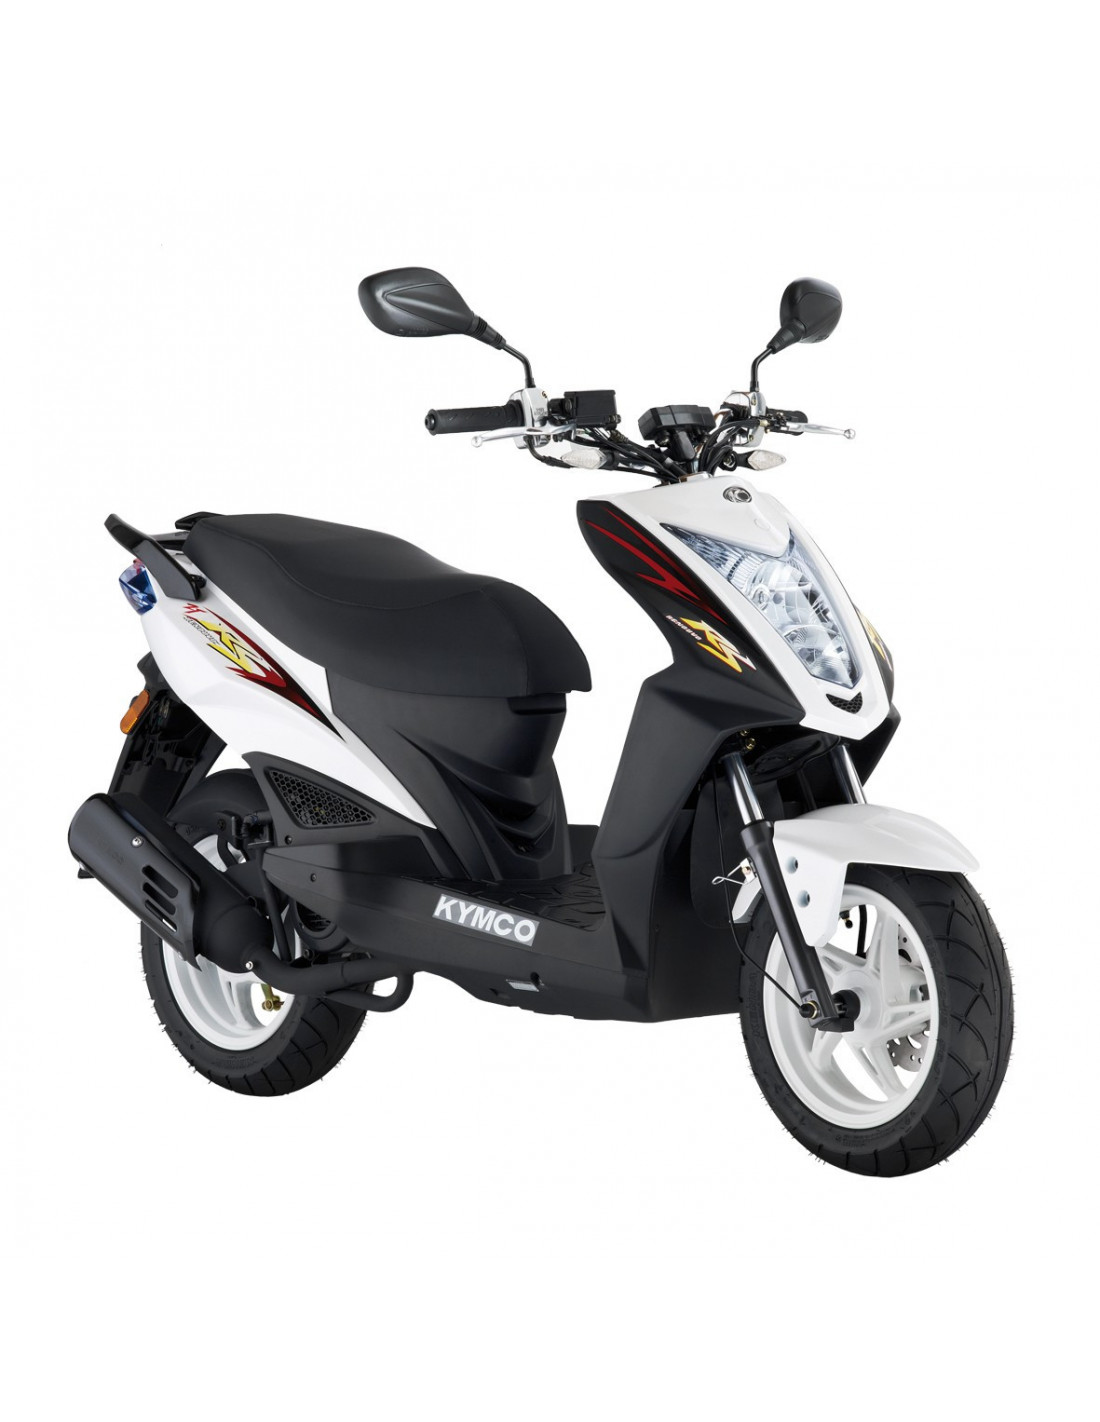 50 agility naked renouvo 2t scooter kymco 91 essonne. Black Bedroom Furniture Sets. Home Design Ideas